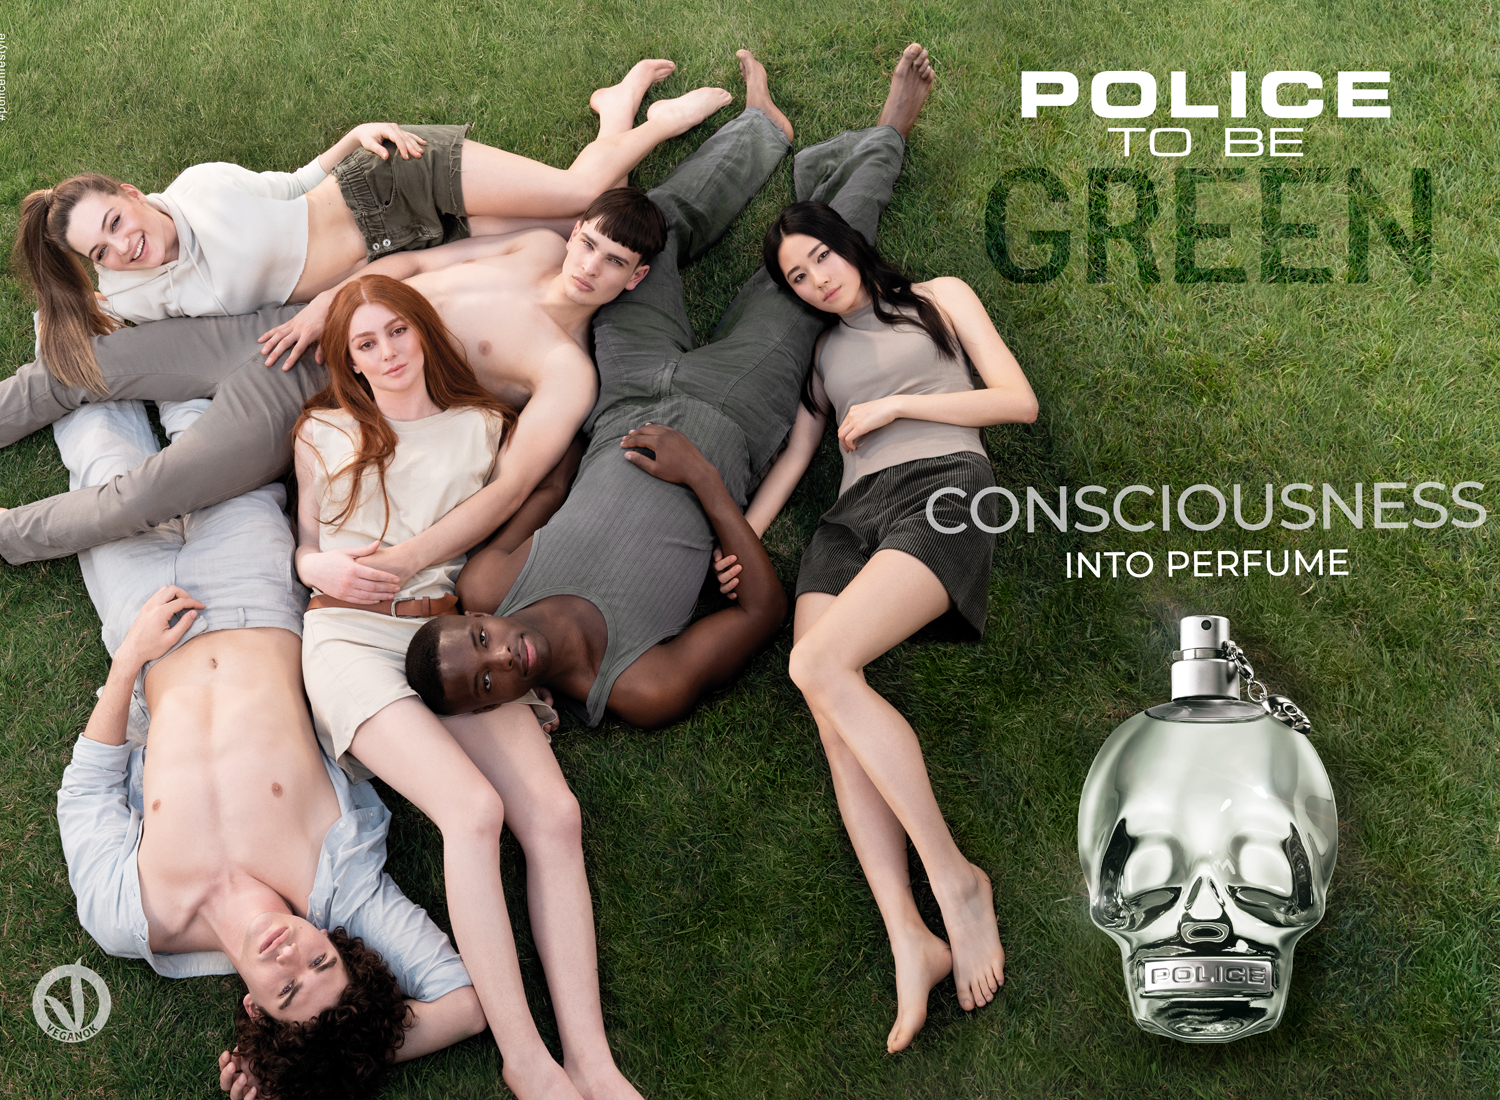 Police To Be Green